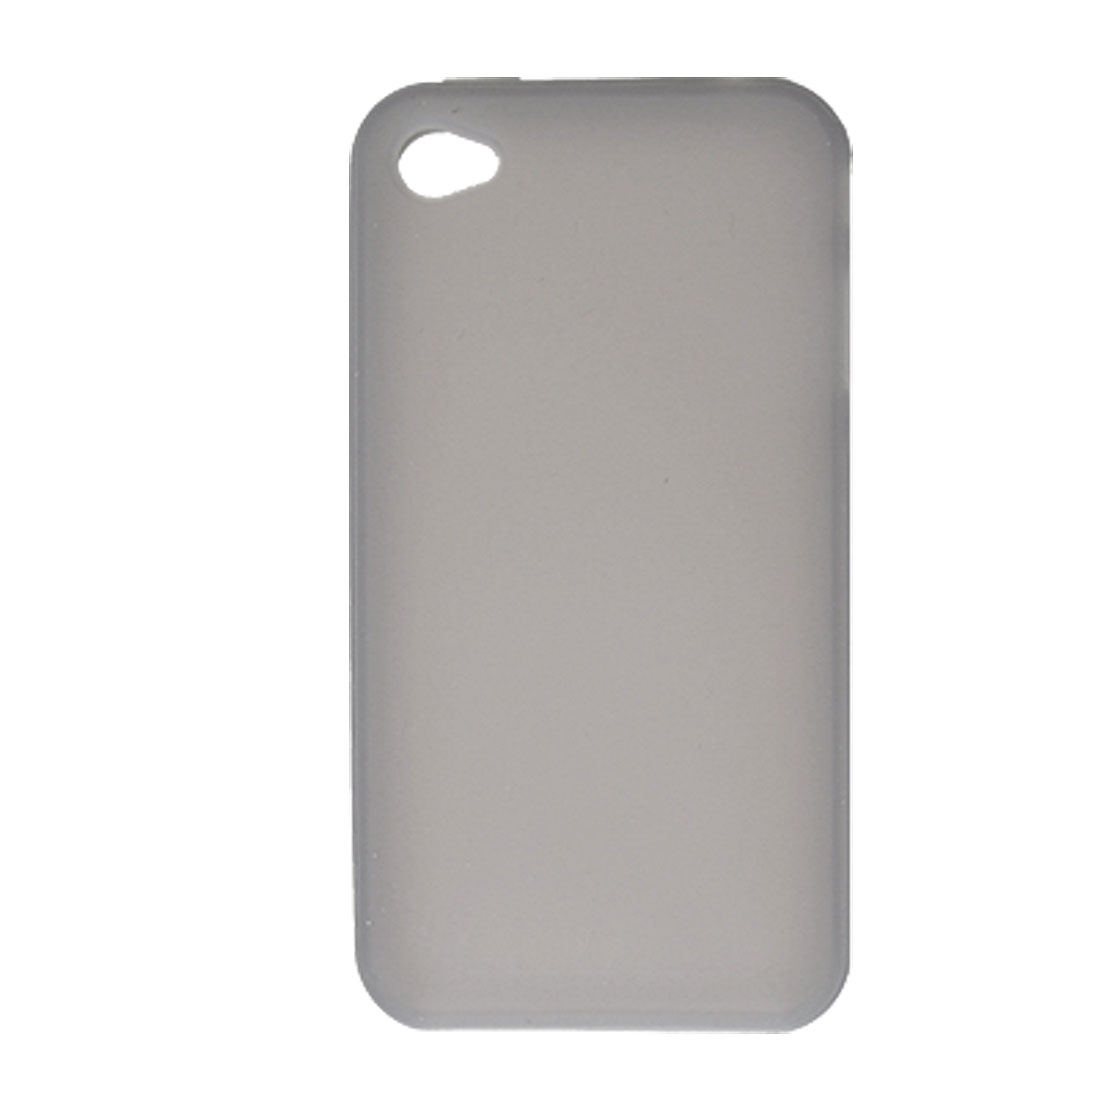 Gray Silicone Skin Back Case + Dust-free Stopper for Apple iPhone 4 4G